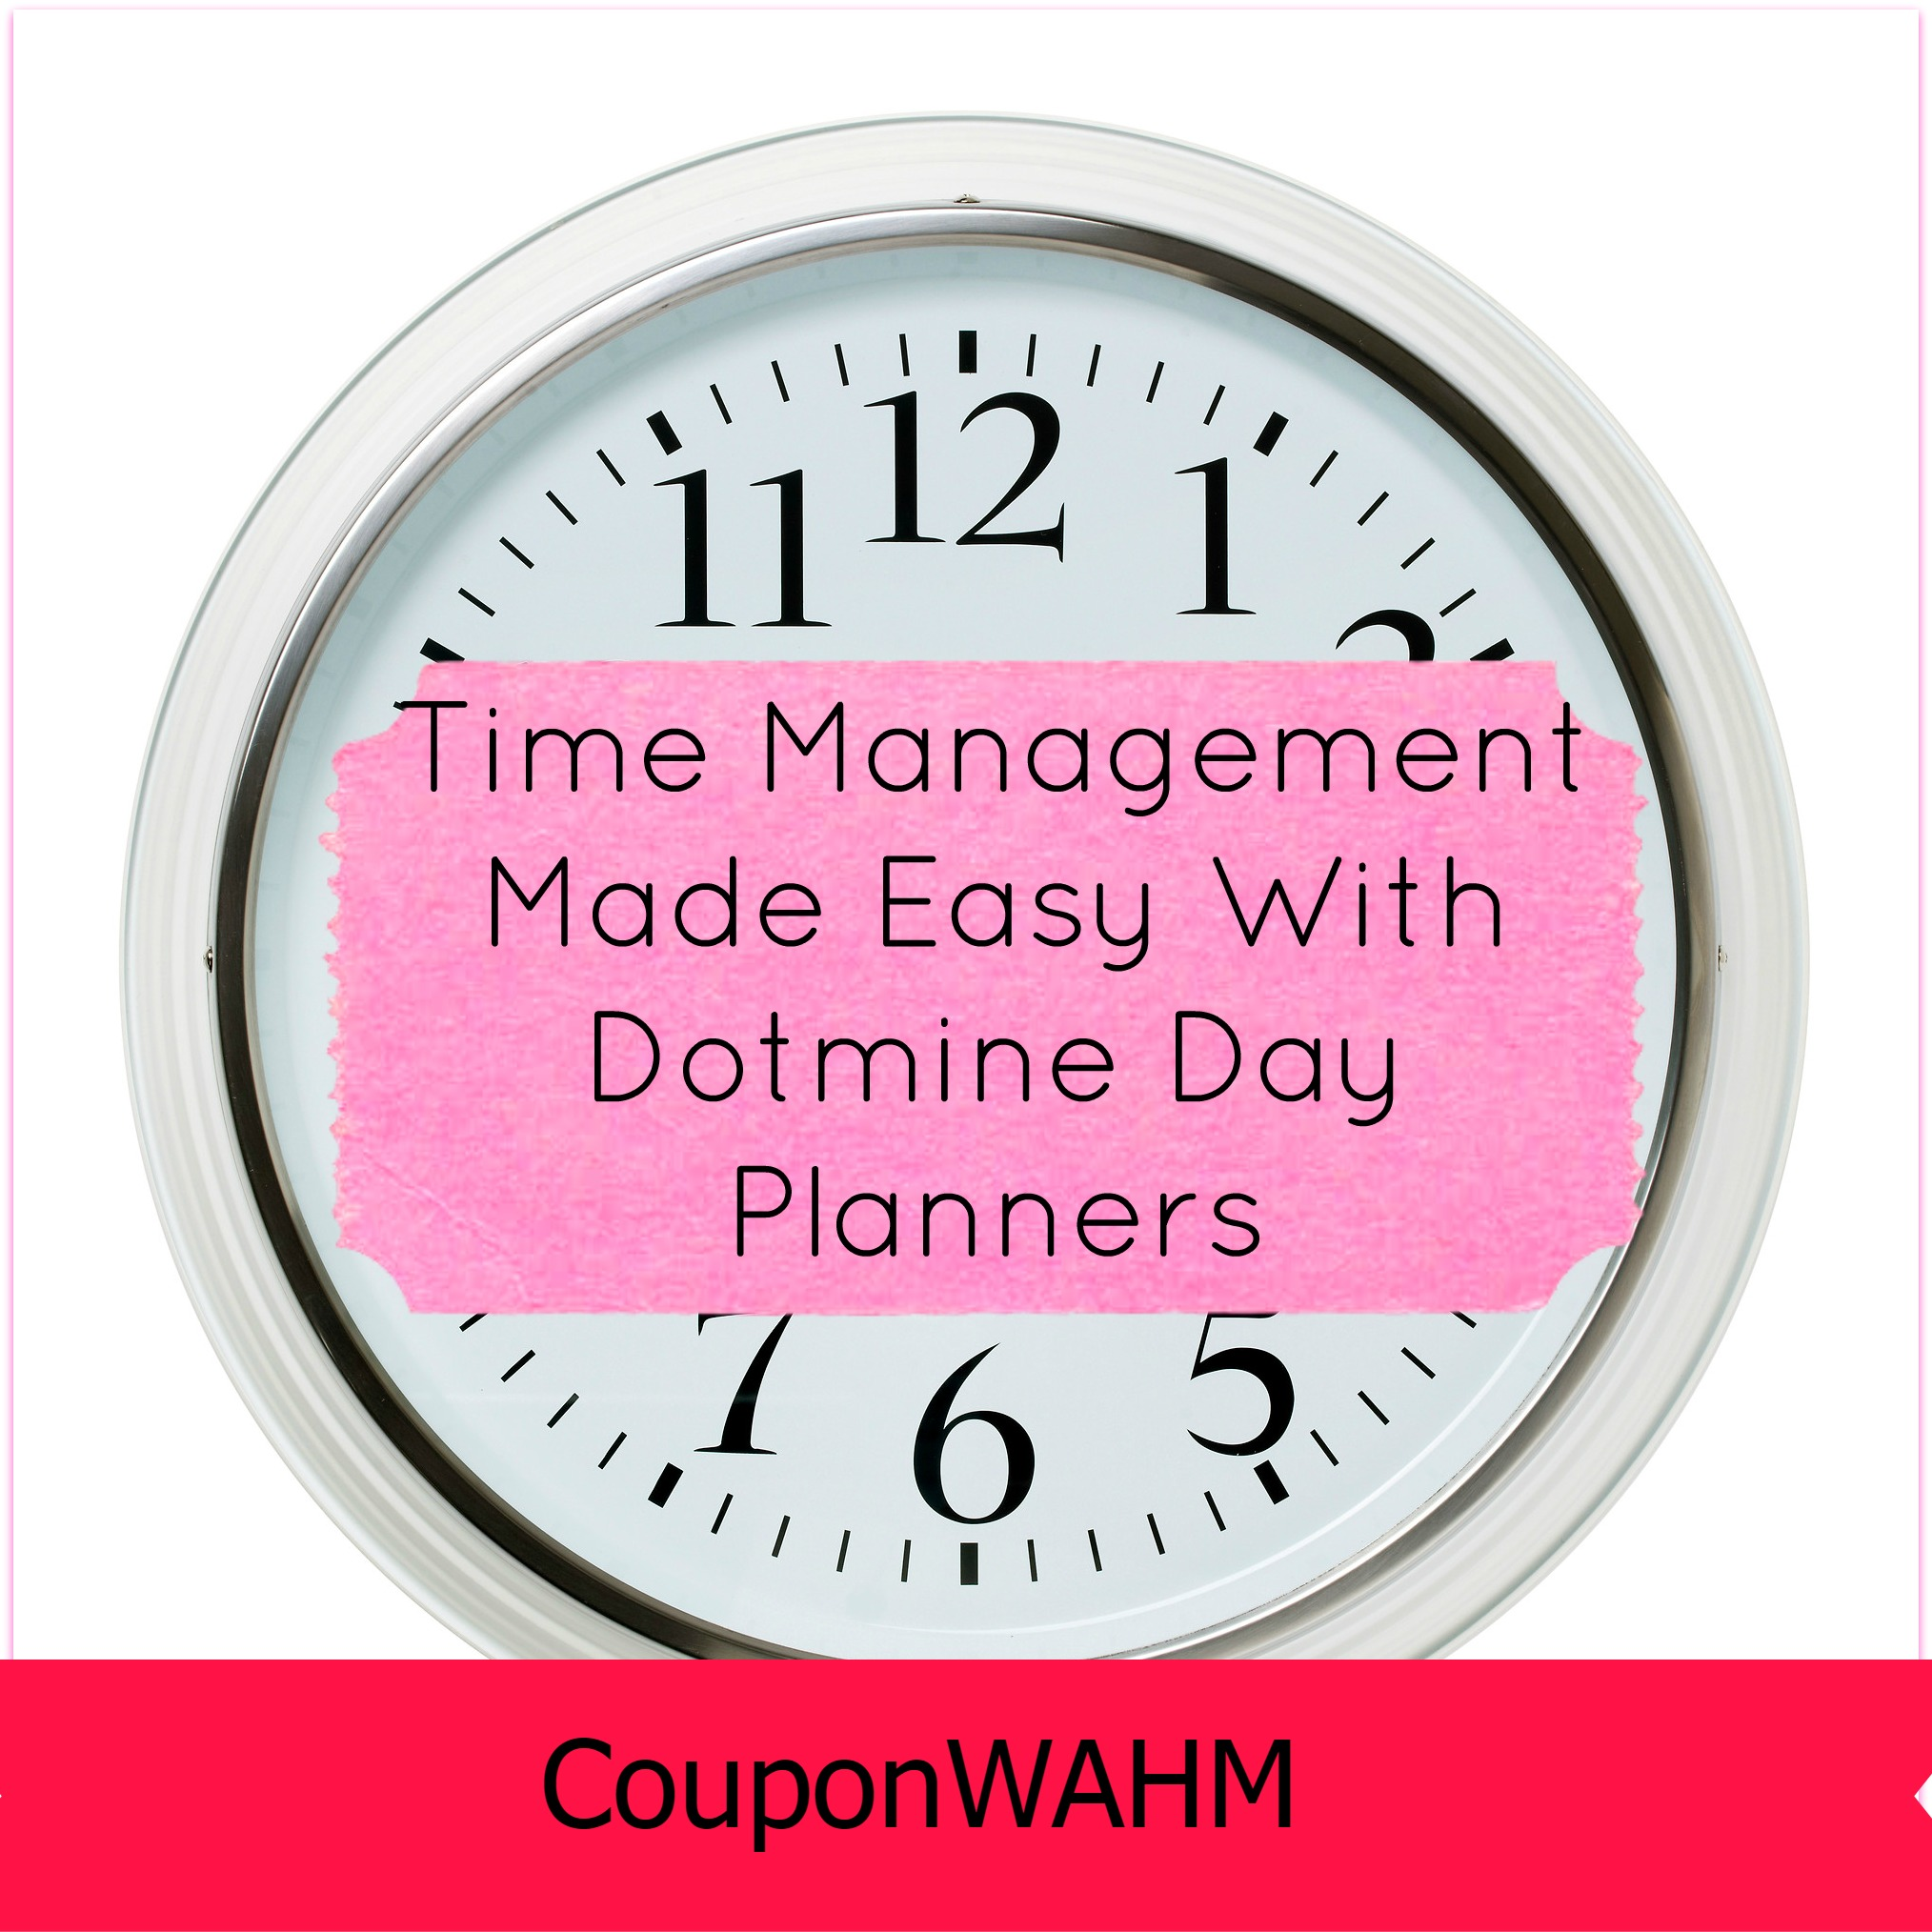 Time Management Made Easy With Dotmine Day Planners #reviews #lovemyplanner